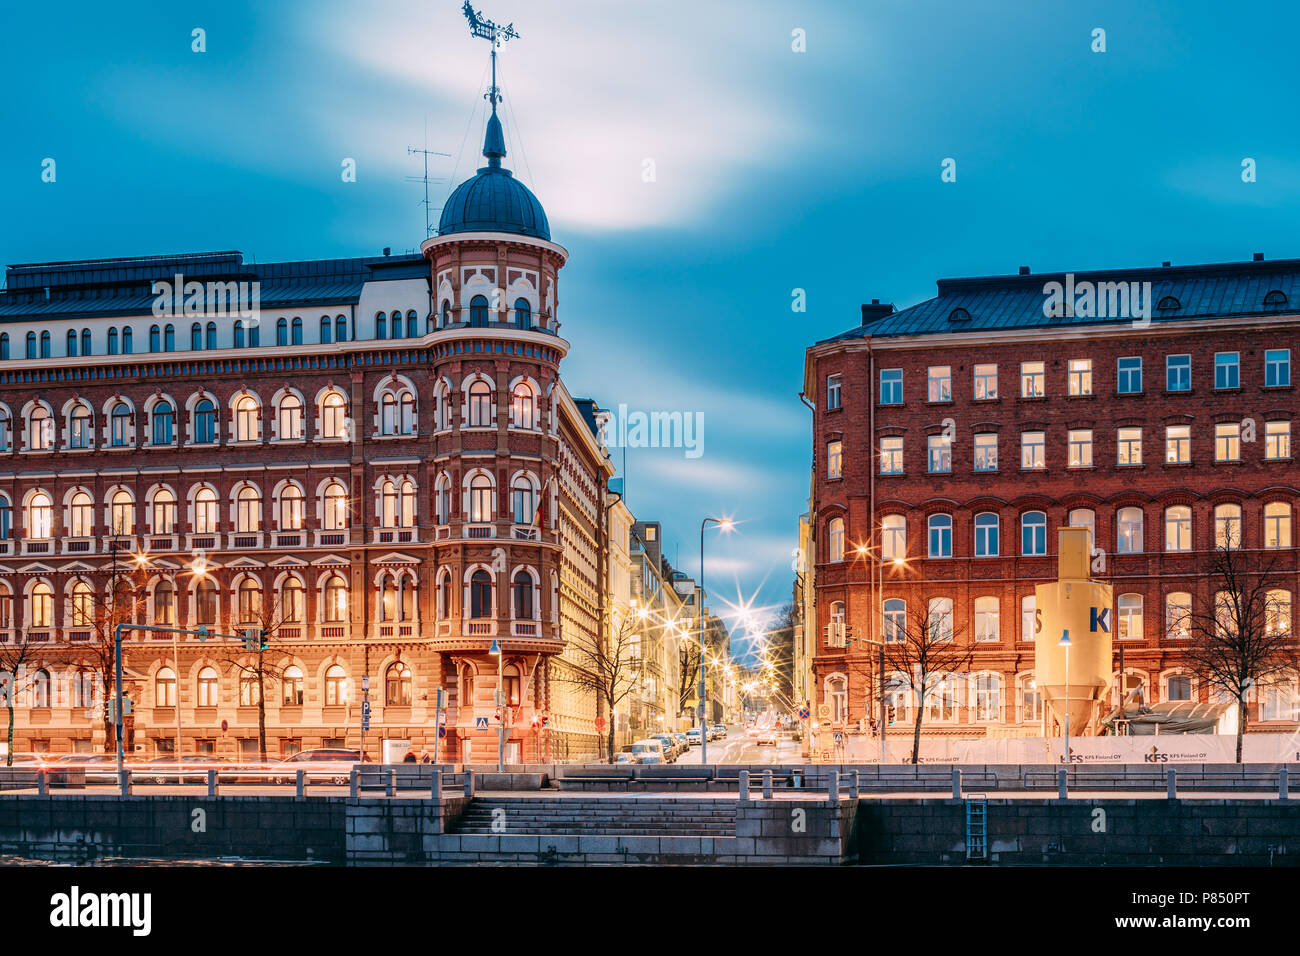 Helsinki, Finland - December 6, 2016: Crossroad Of Pohjoisranta And Kirkkokatu Street In Evening Or Night Illumination. Stock Photo